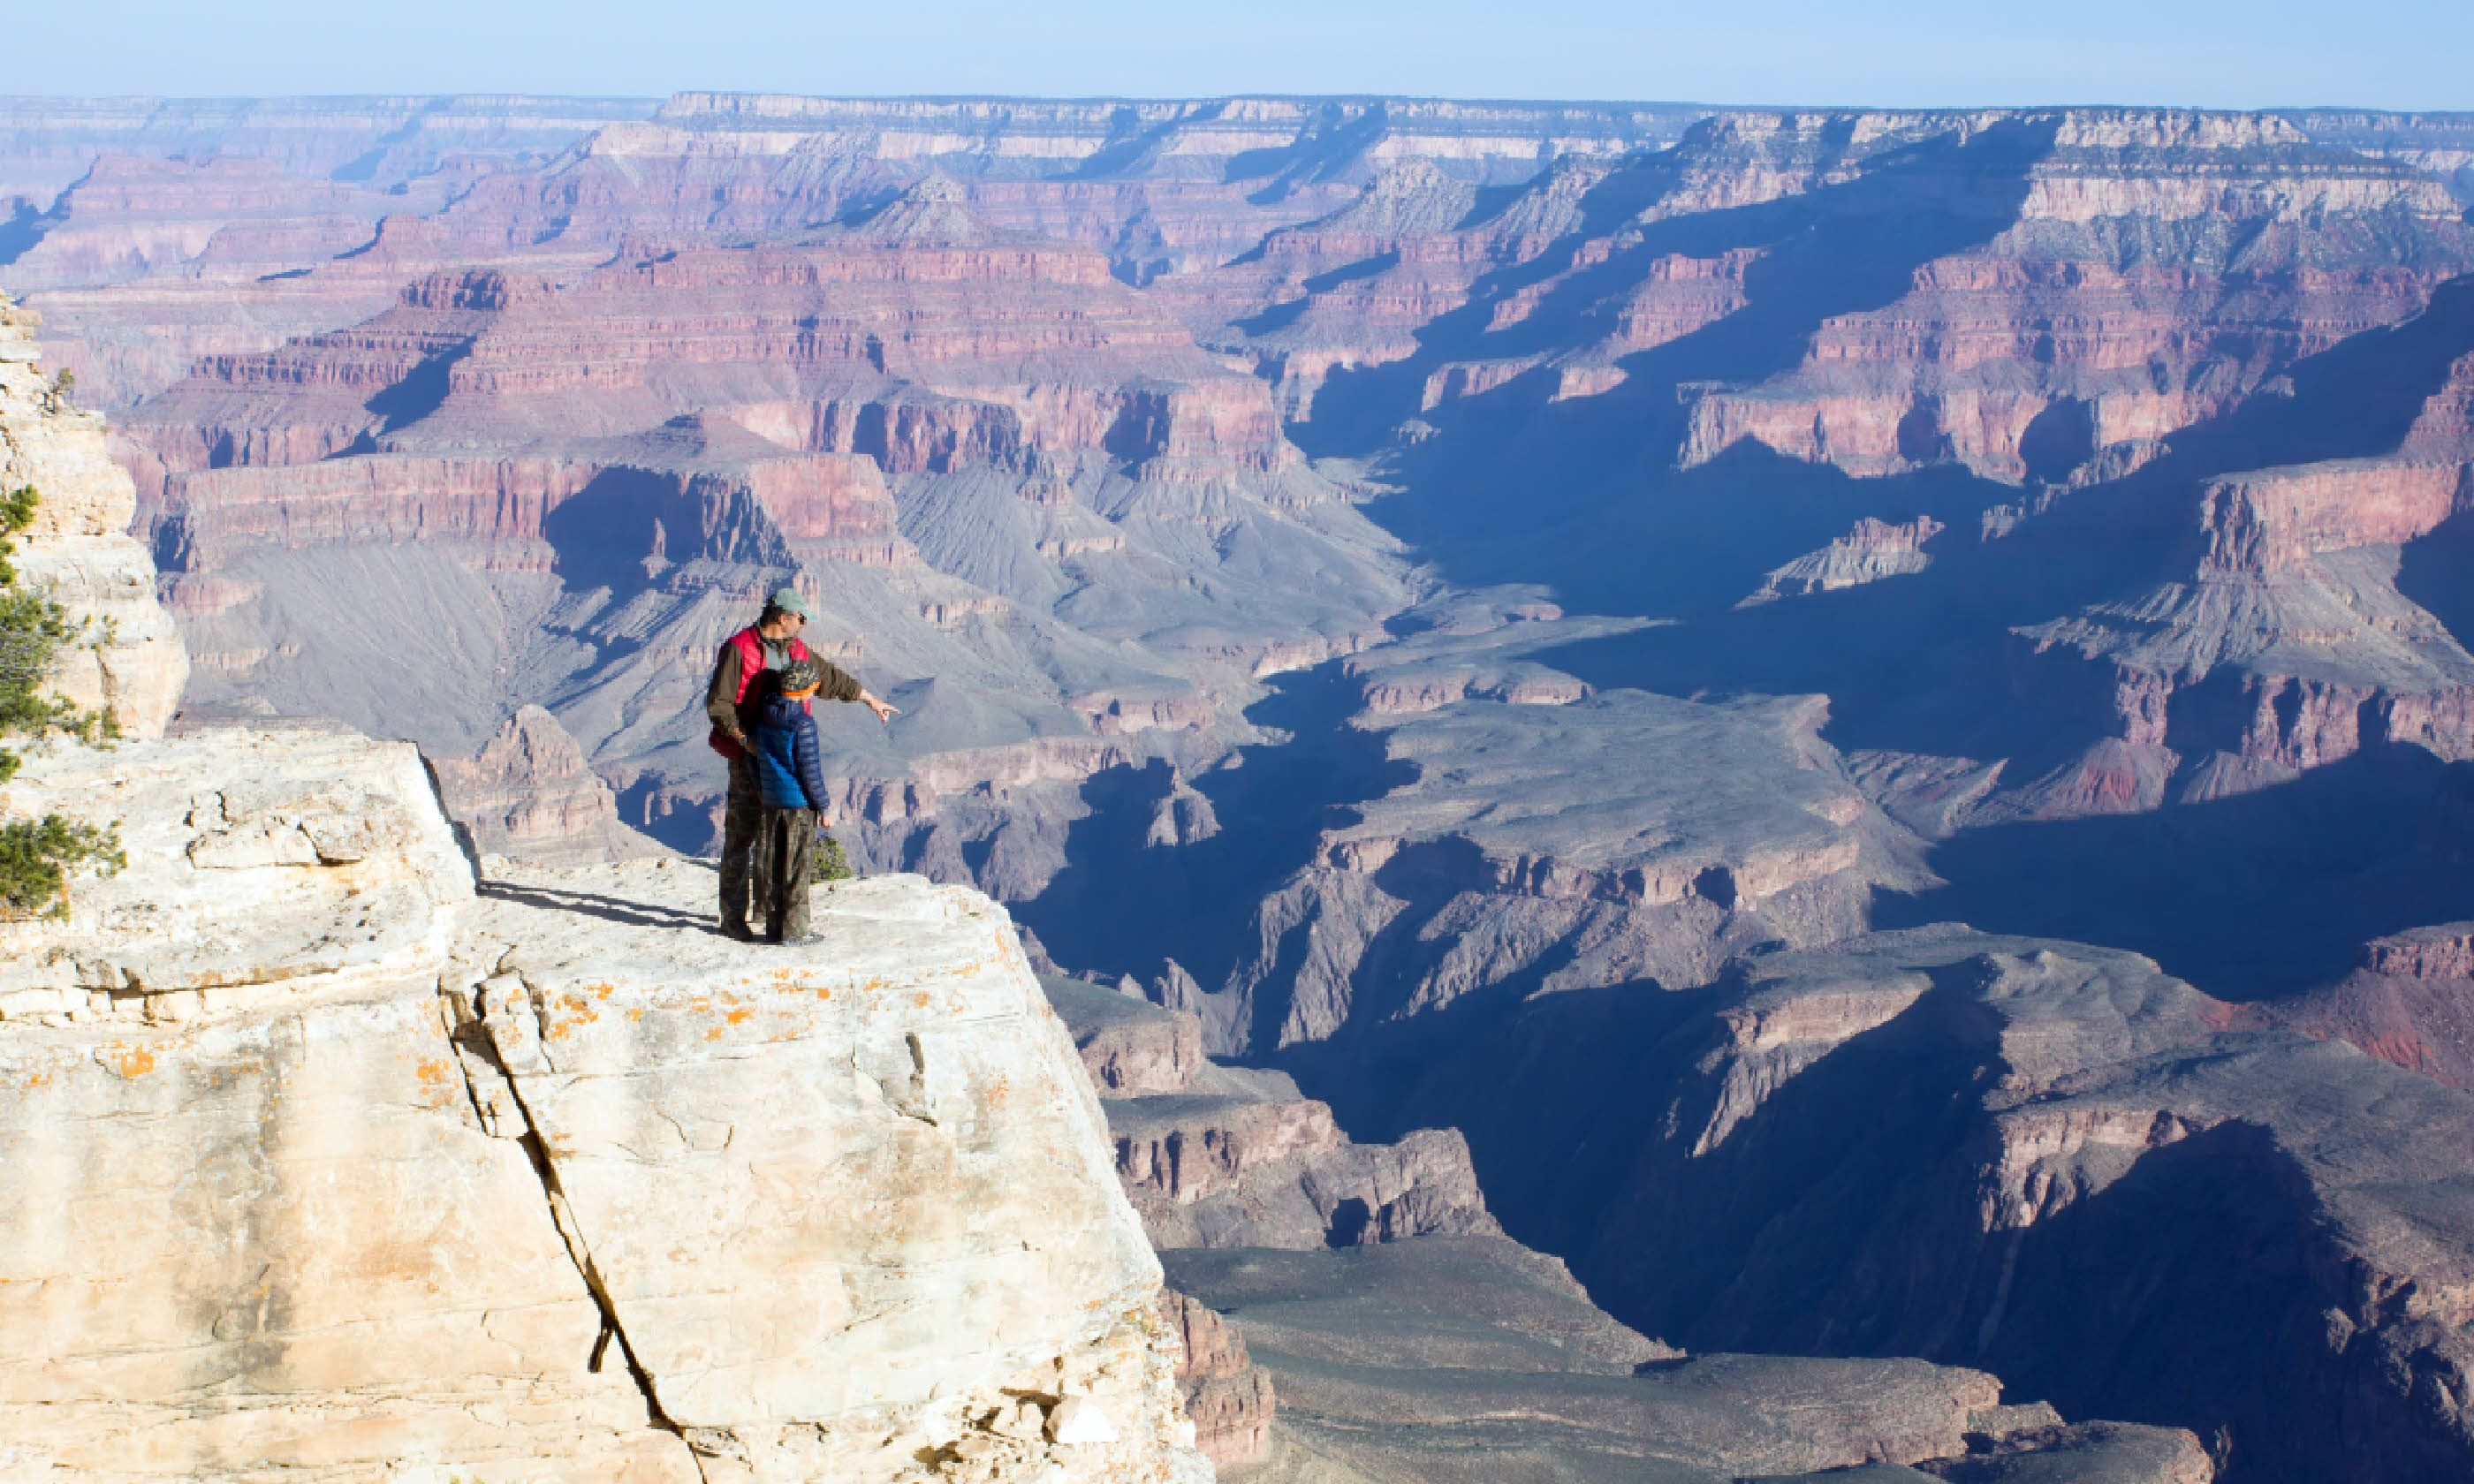 Family at the Grand Canyon (Shutterstock)